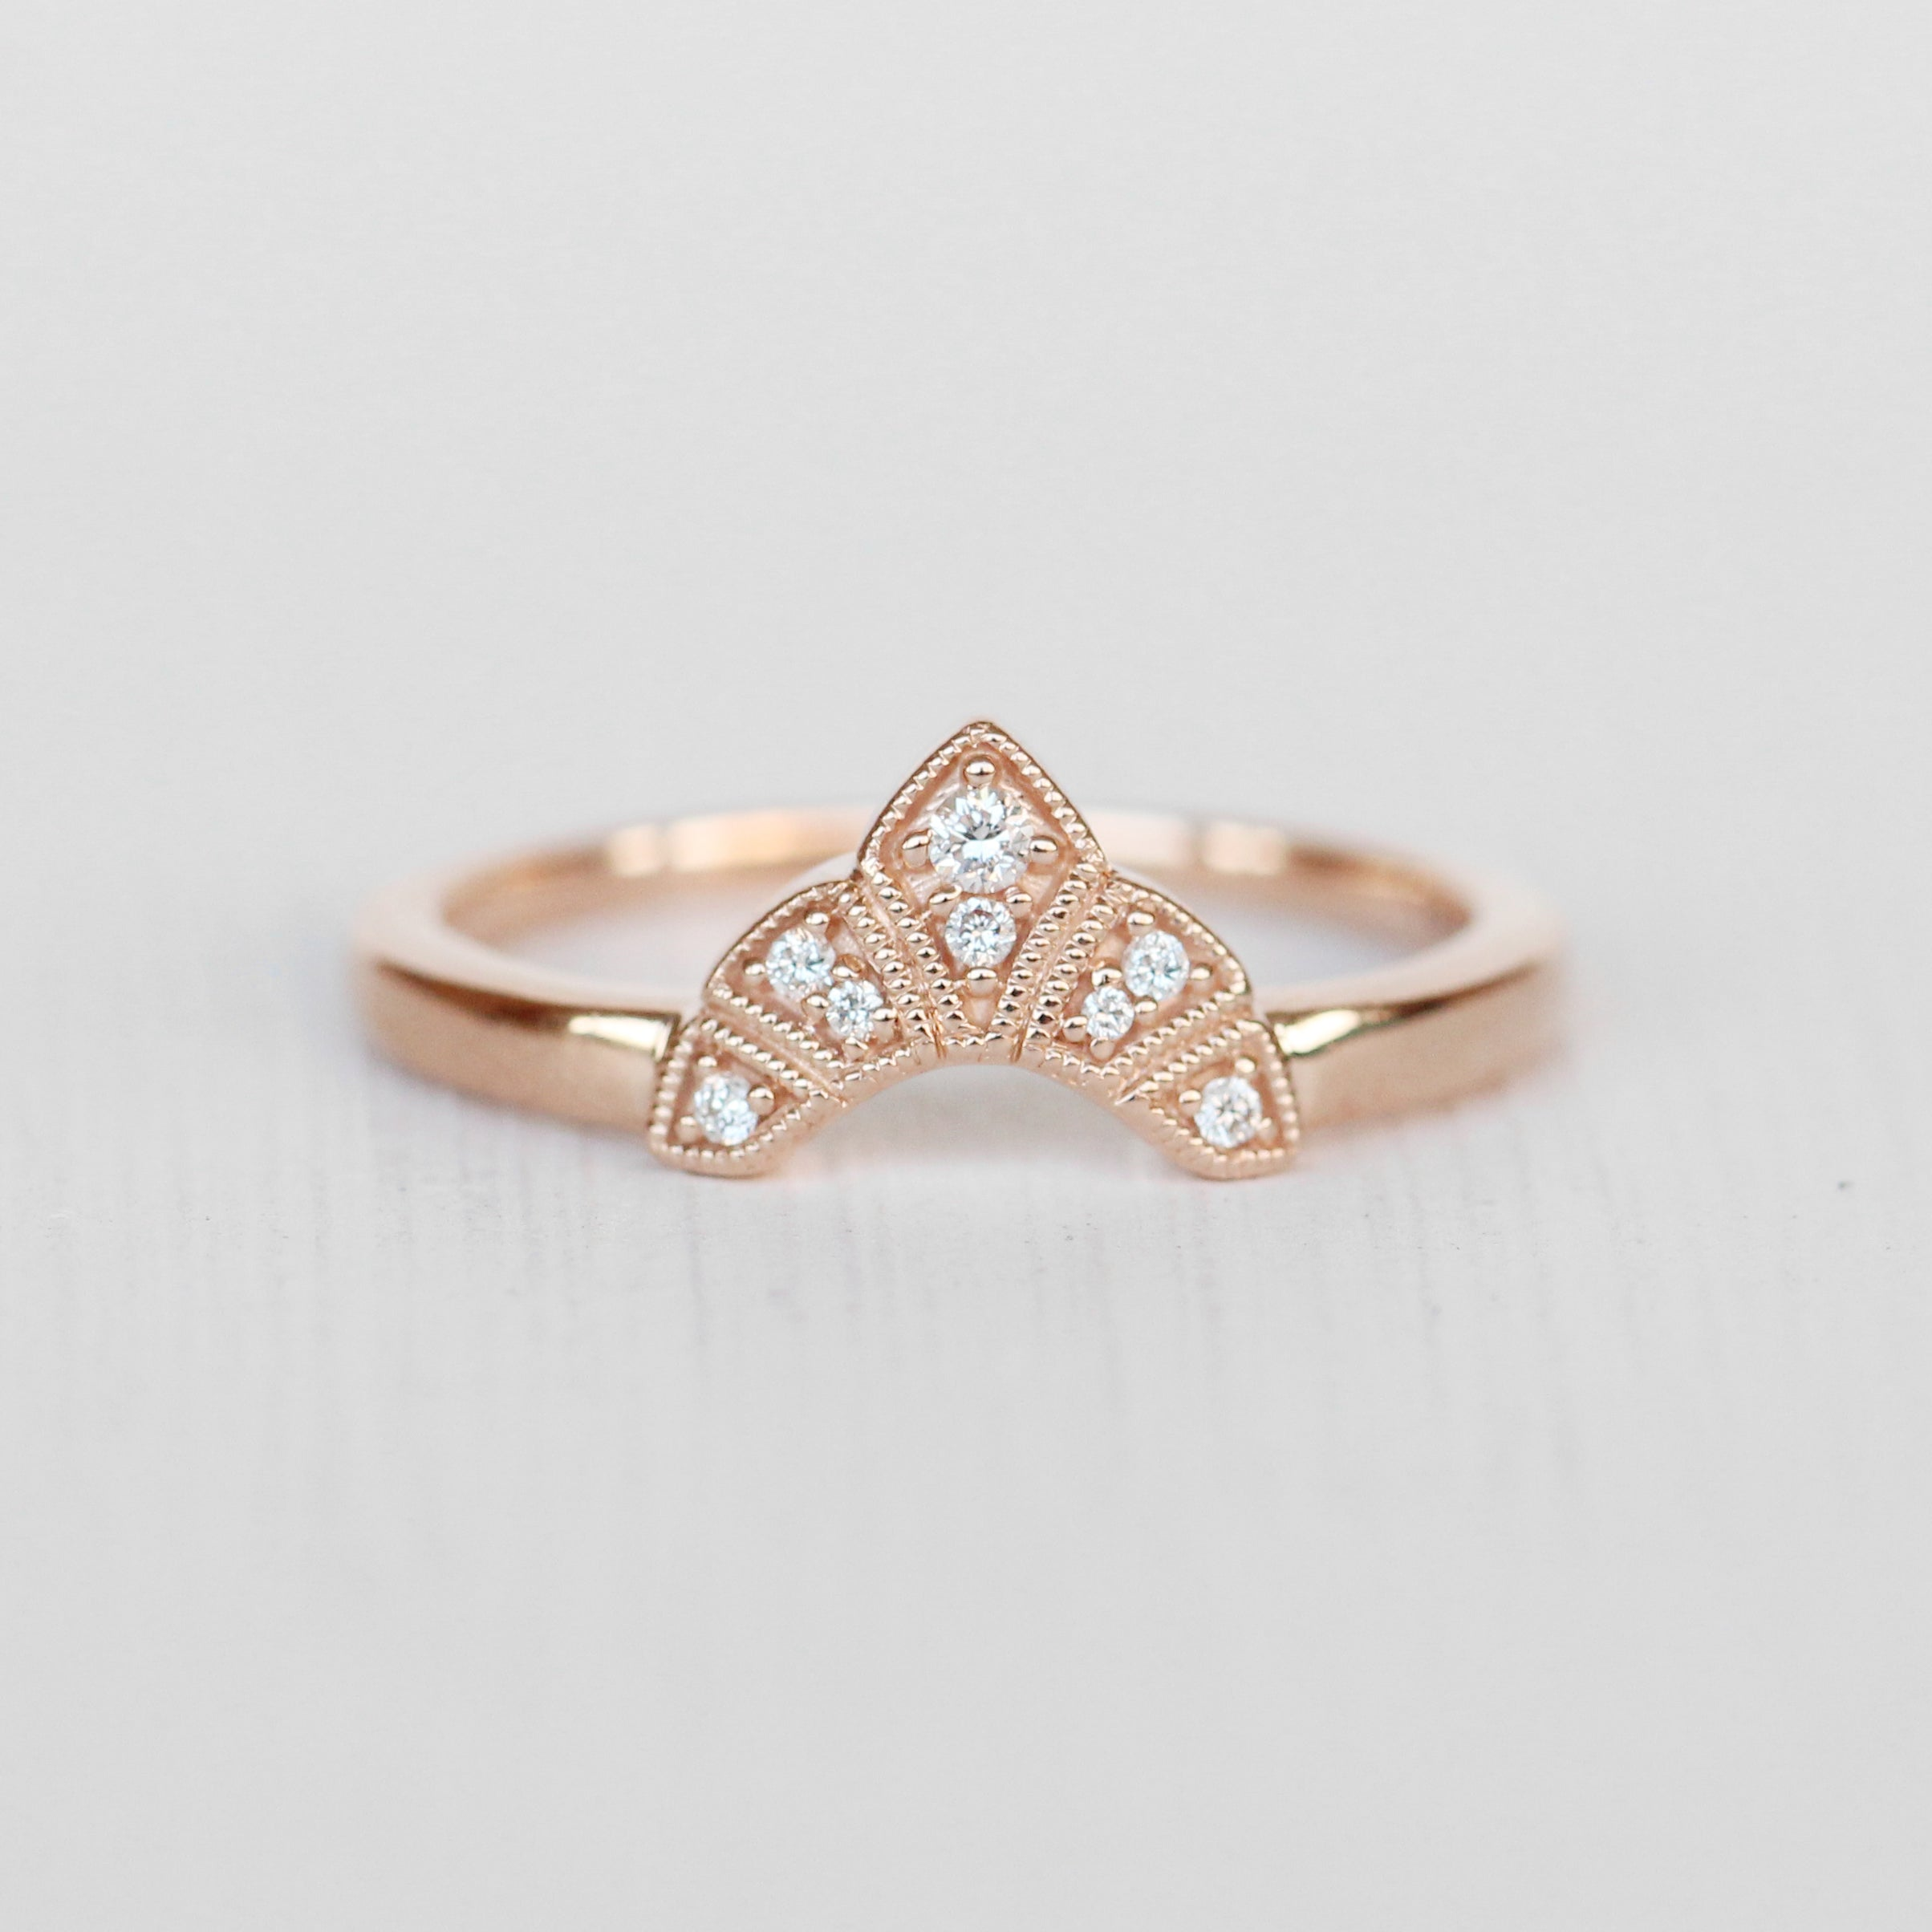 Antoinette - Contoured Diamond Wedding Stacking Band - made to order - Midwinter Co. Alternative Bridal Rings and Modern Fine Jewelry